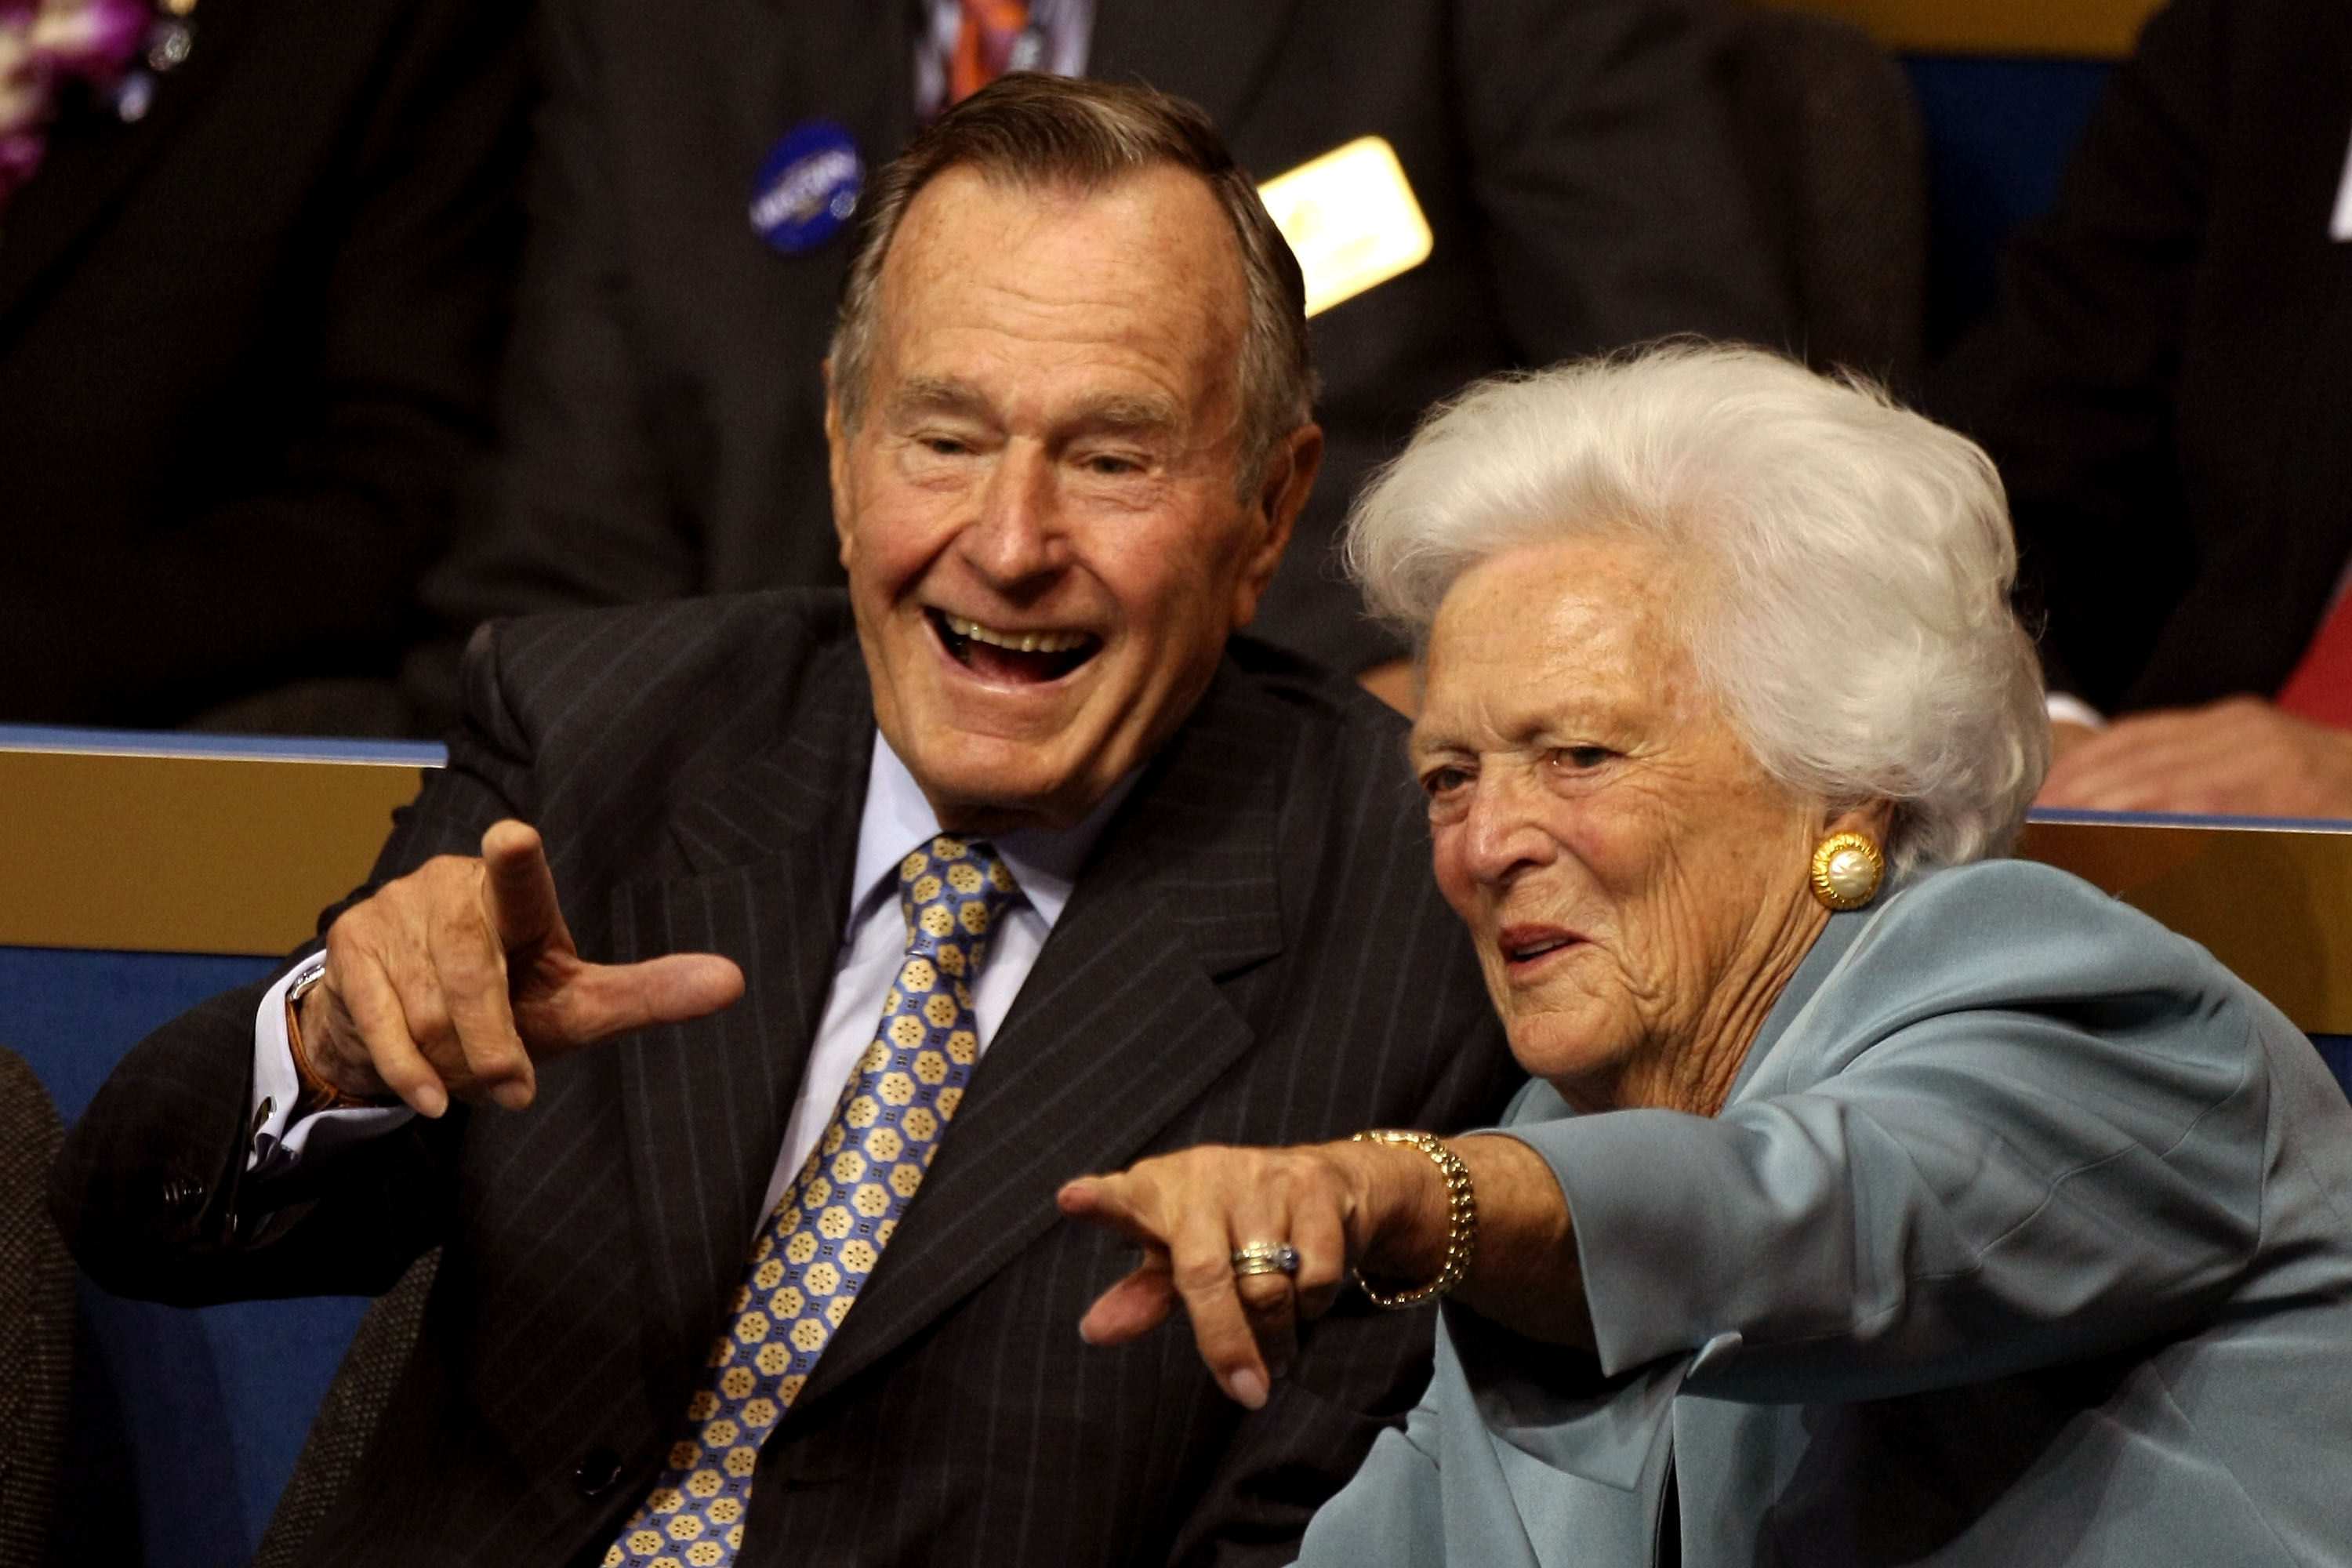 Former President George H.W. Bush (L) and former first lady Barbara Bush (C) point from their seats on day two of the Republican National Convention (RNC) at the Xcel Energy Center on September 2, 2008 in St. Paul, Minnesota.